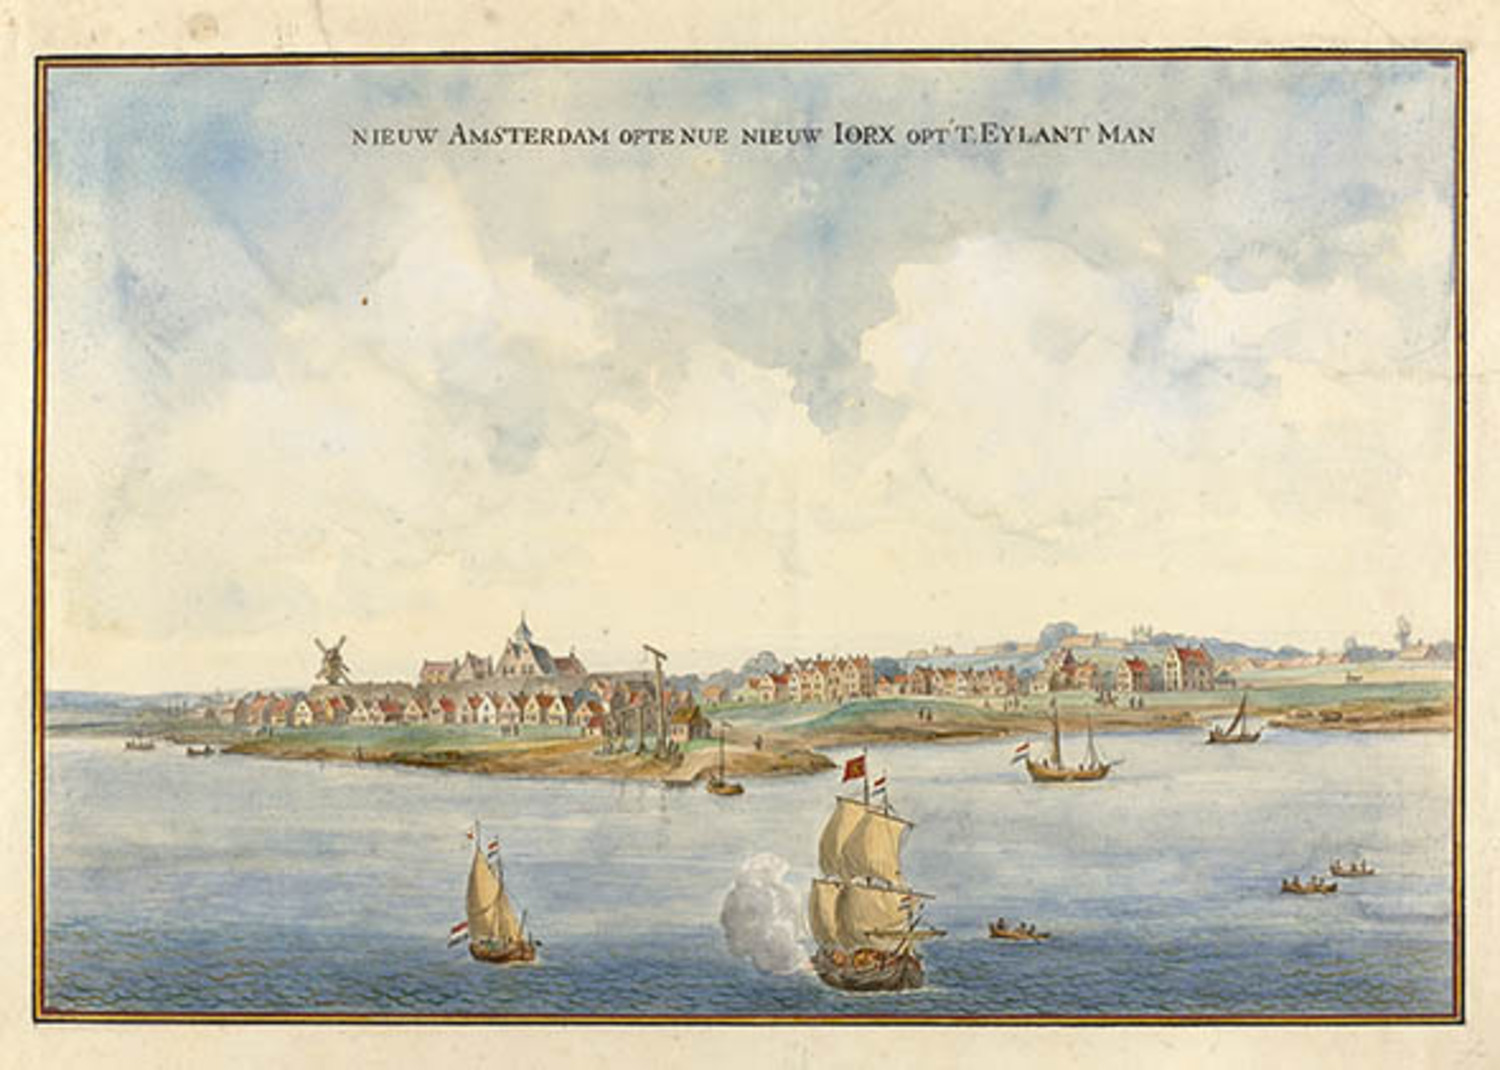 Image of Manhattan, circa 1660.